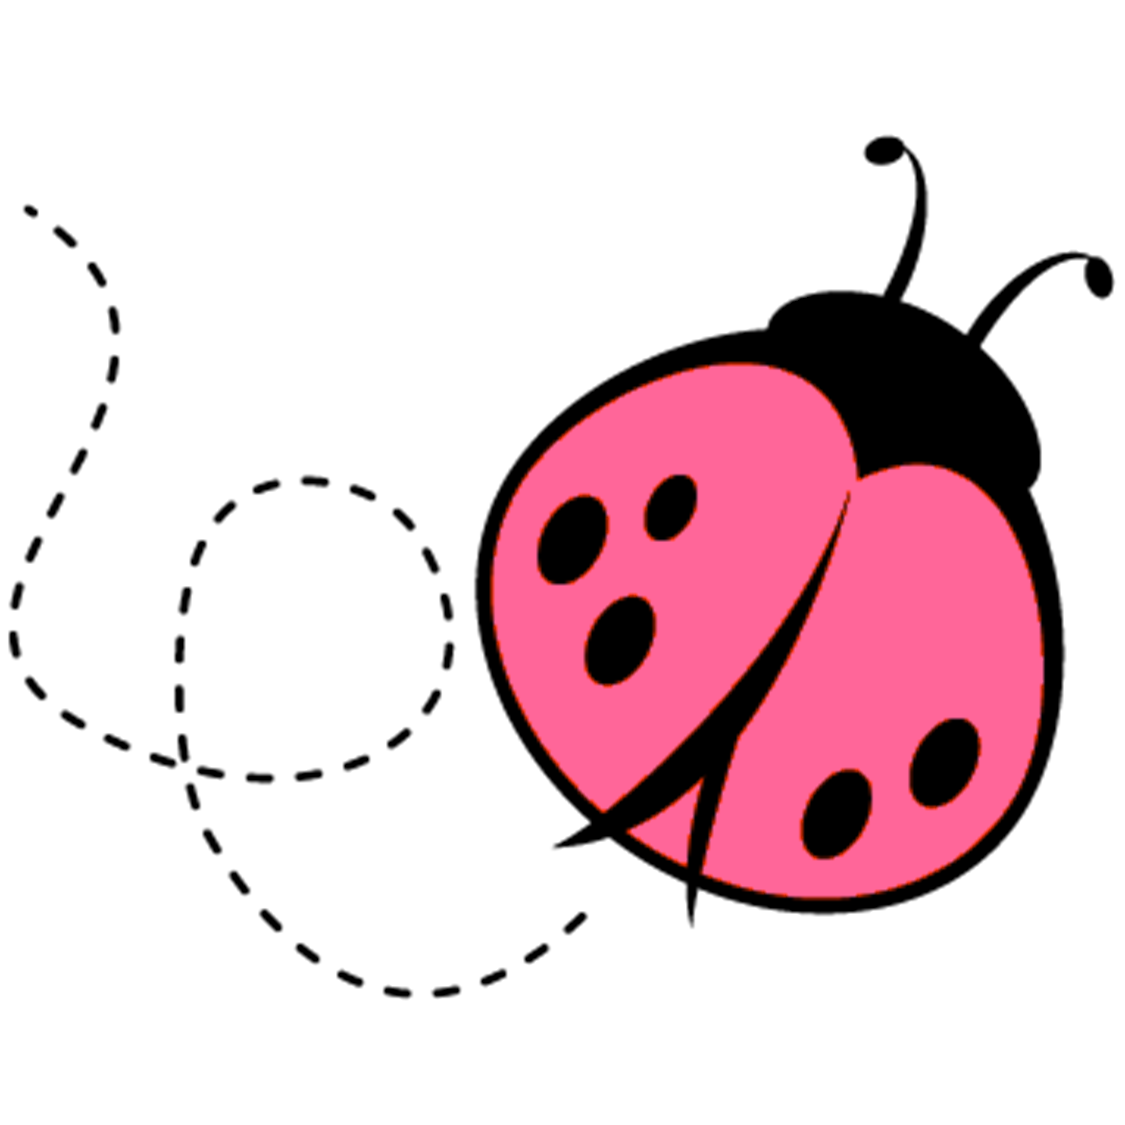 image relating to Printable Ladybug identified as Ladybug Enjoyable Things Toward Do